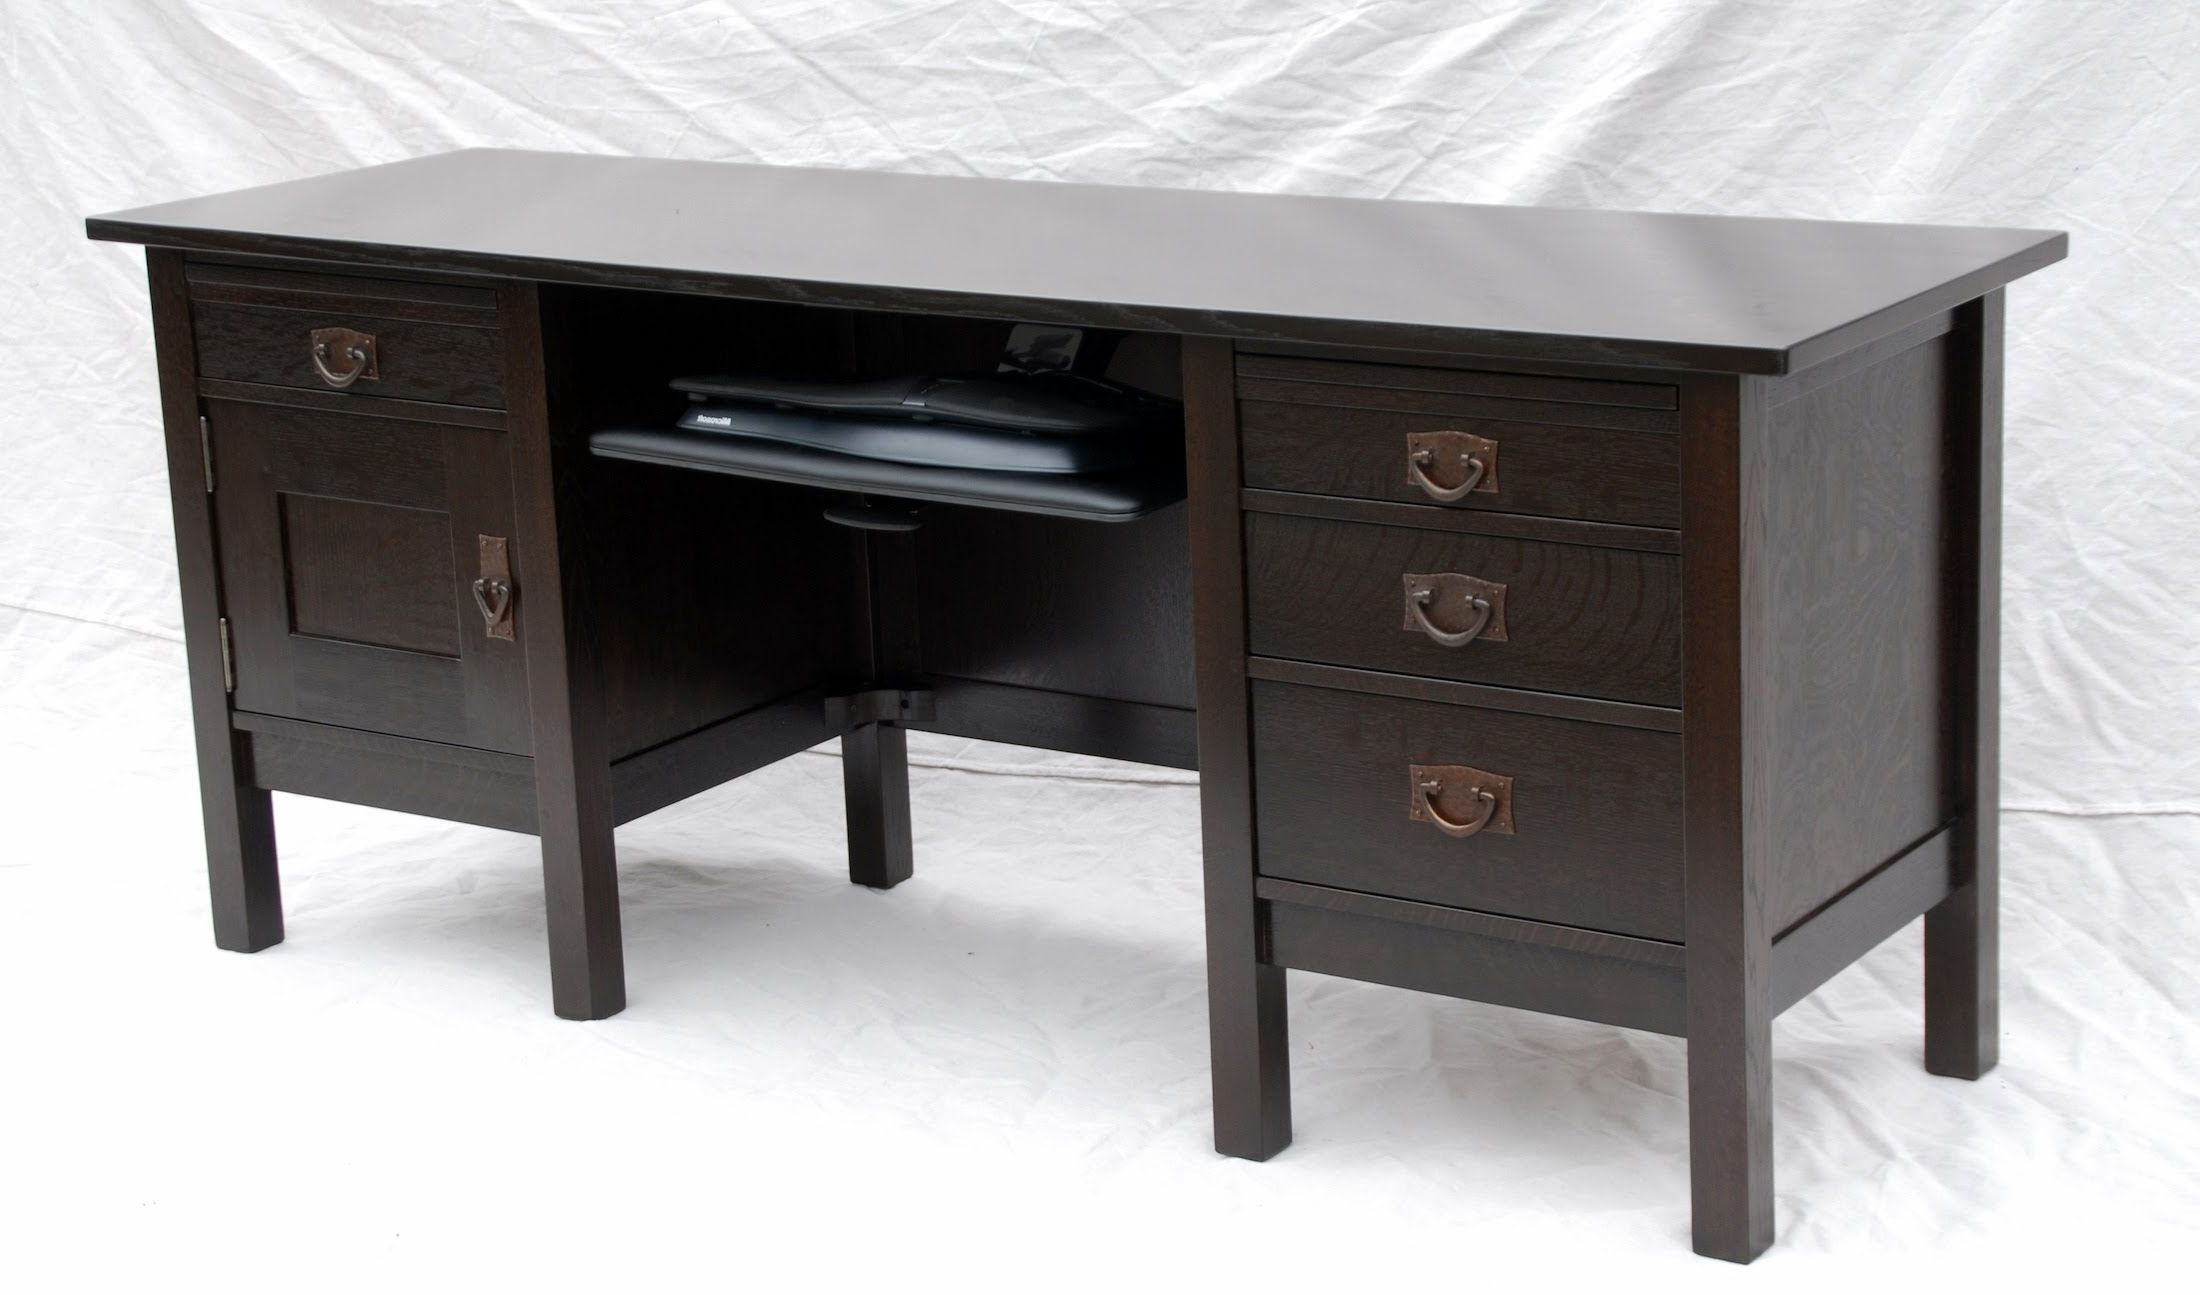 Widely Used Voorhees Craftsman Mission Oak Furniture – Voorhees Craftsman In Executive Computer Desks (View 20 of 20)